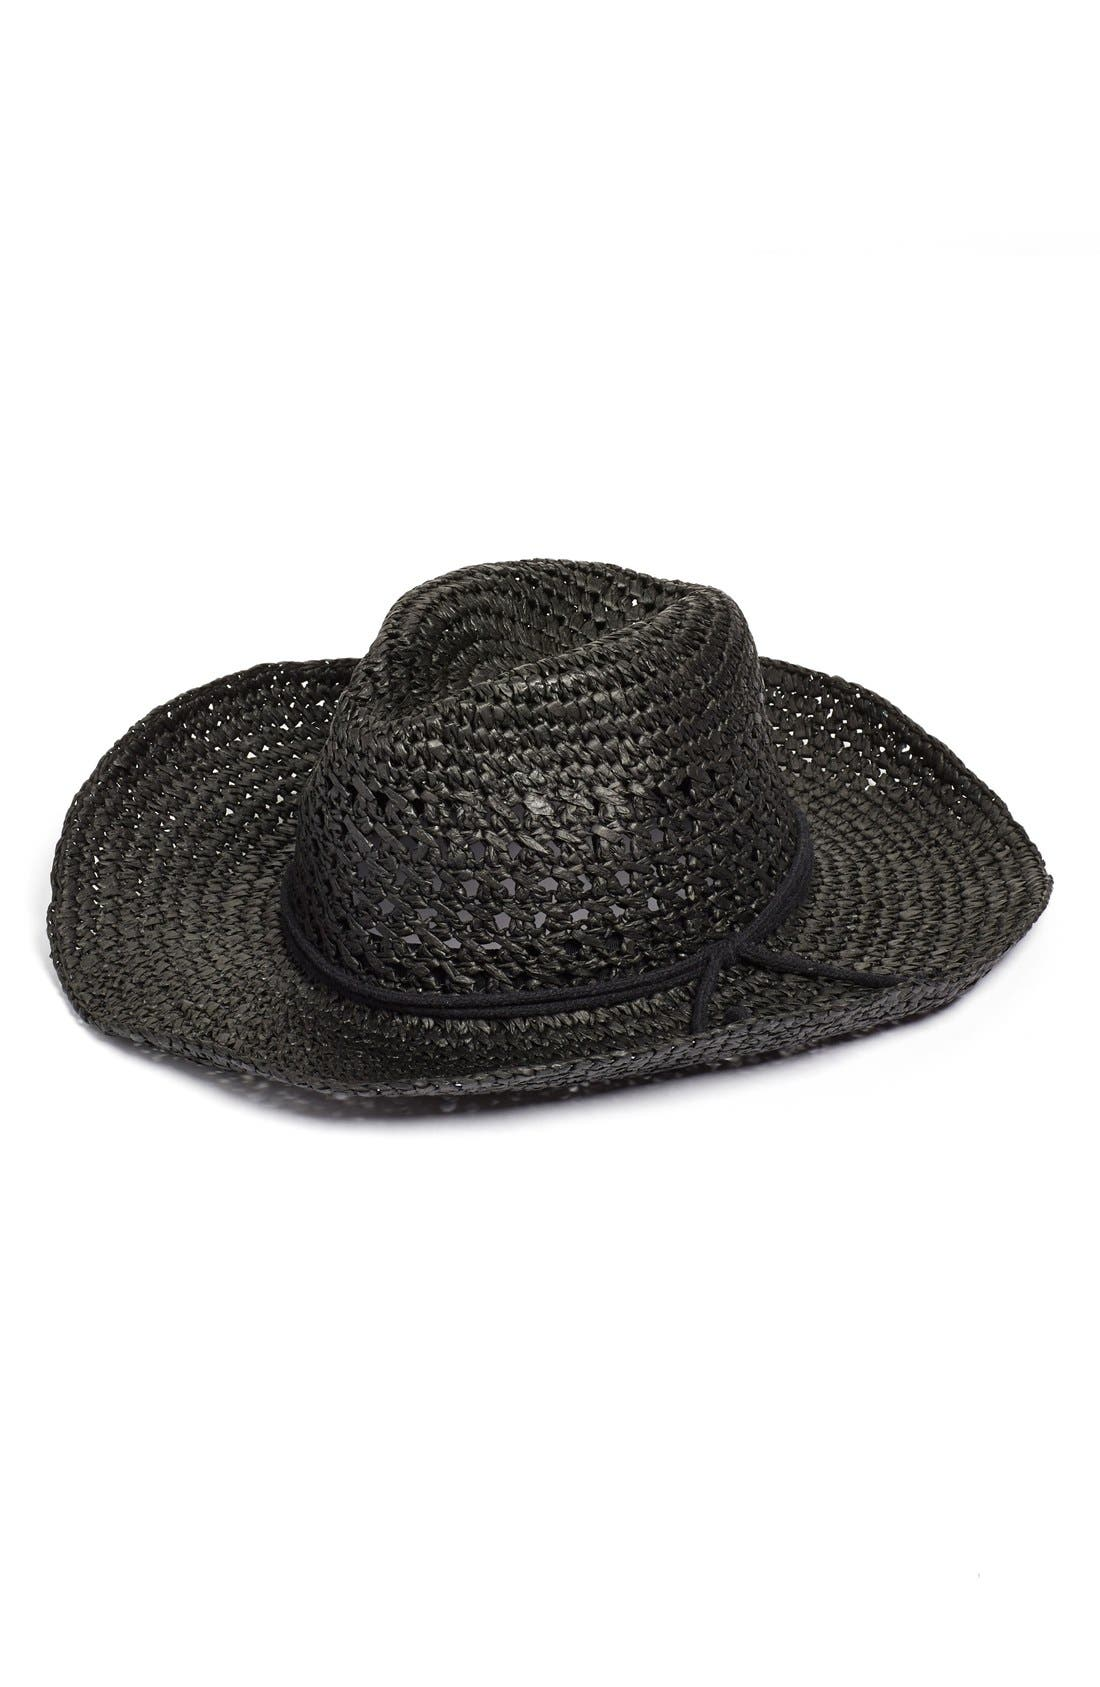 Alternate Image 1 Selected - Hinge 'Layla' Open Weave Straw Cowboy Hat